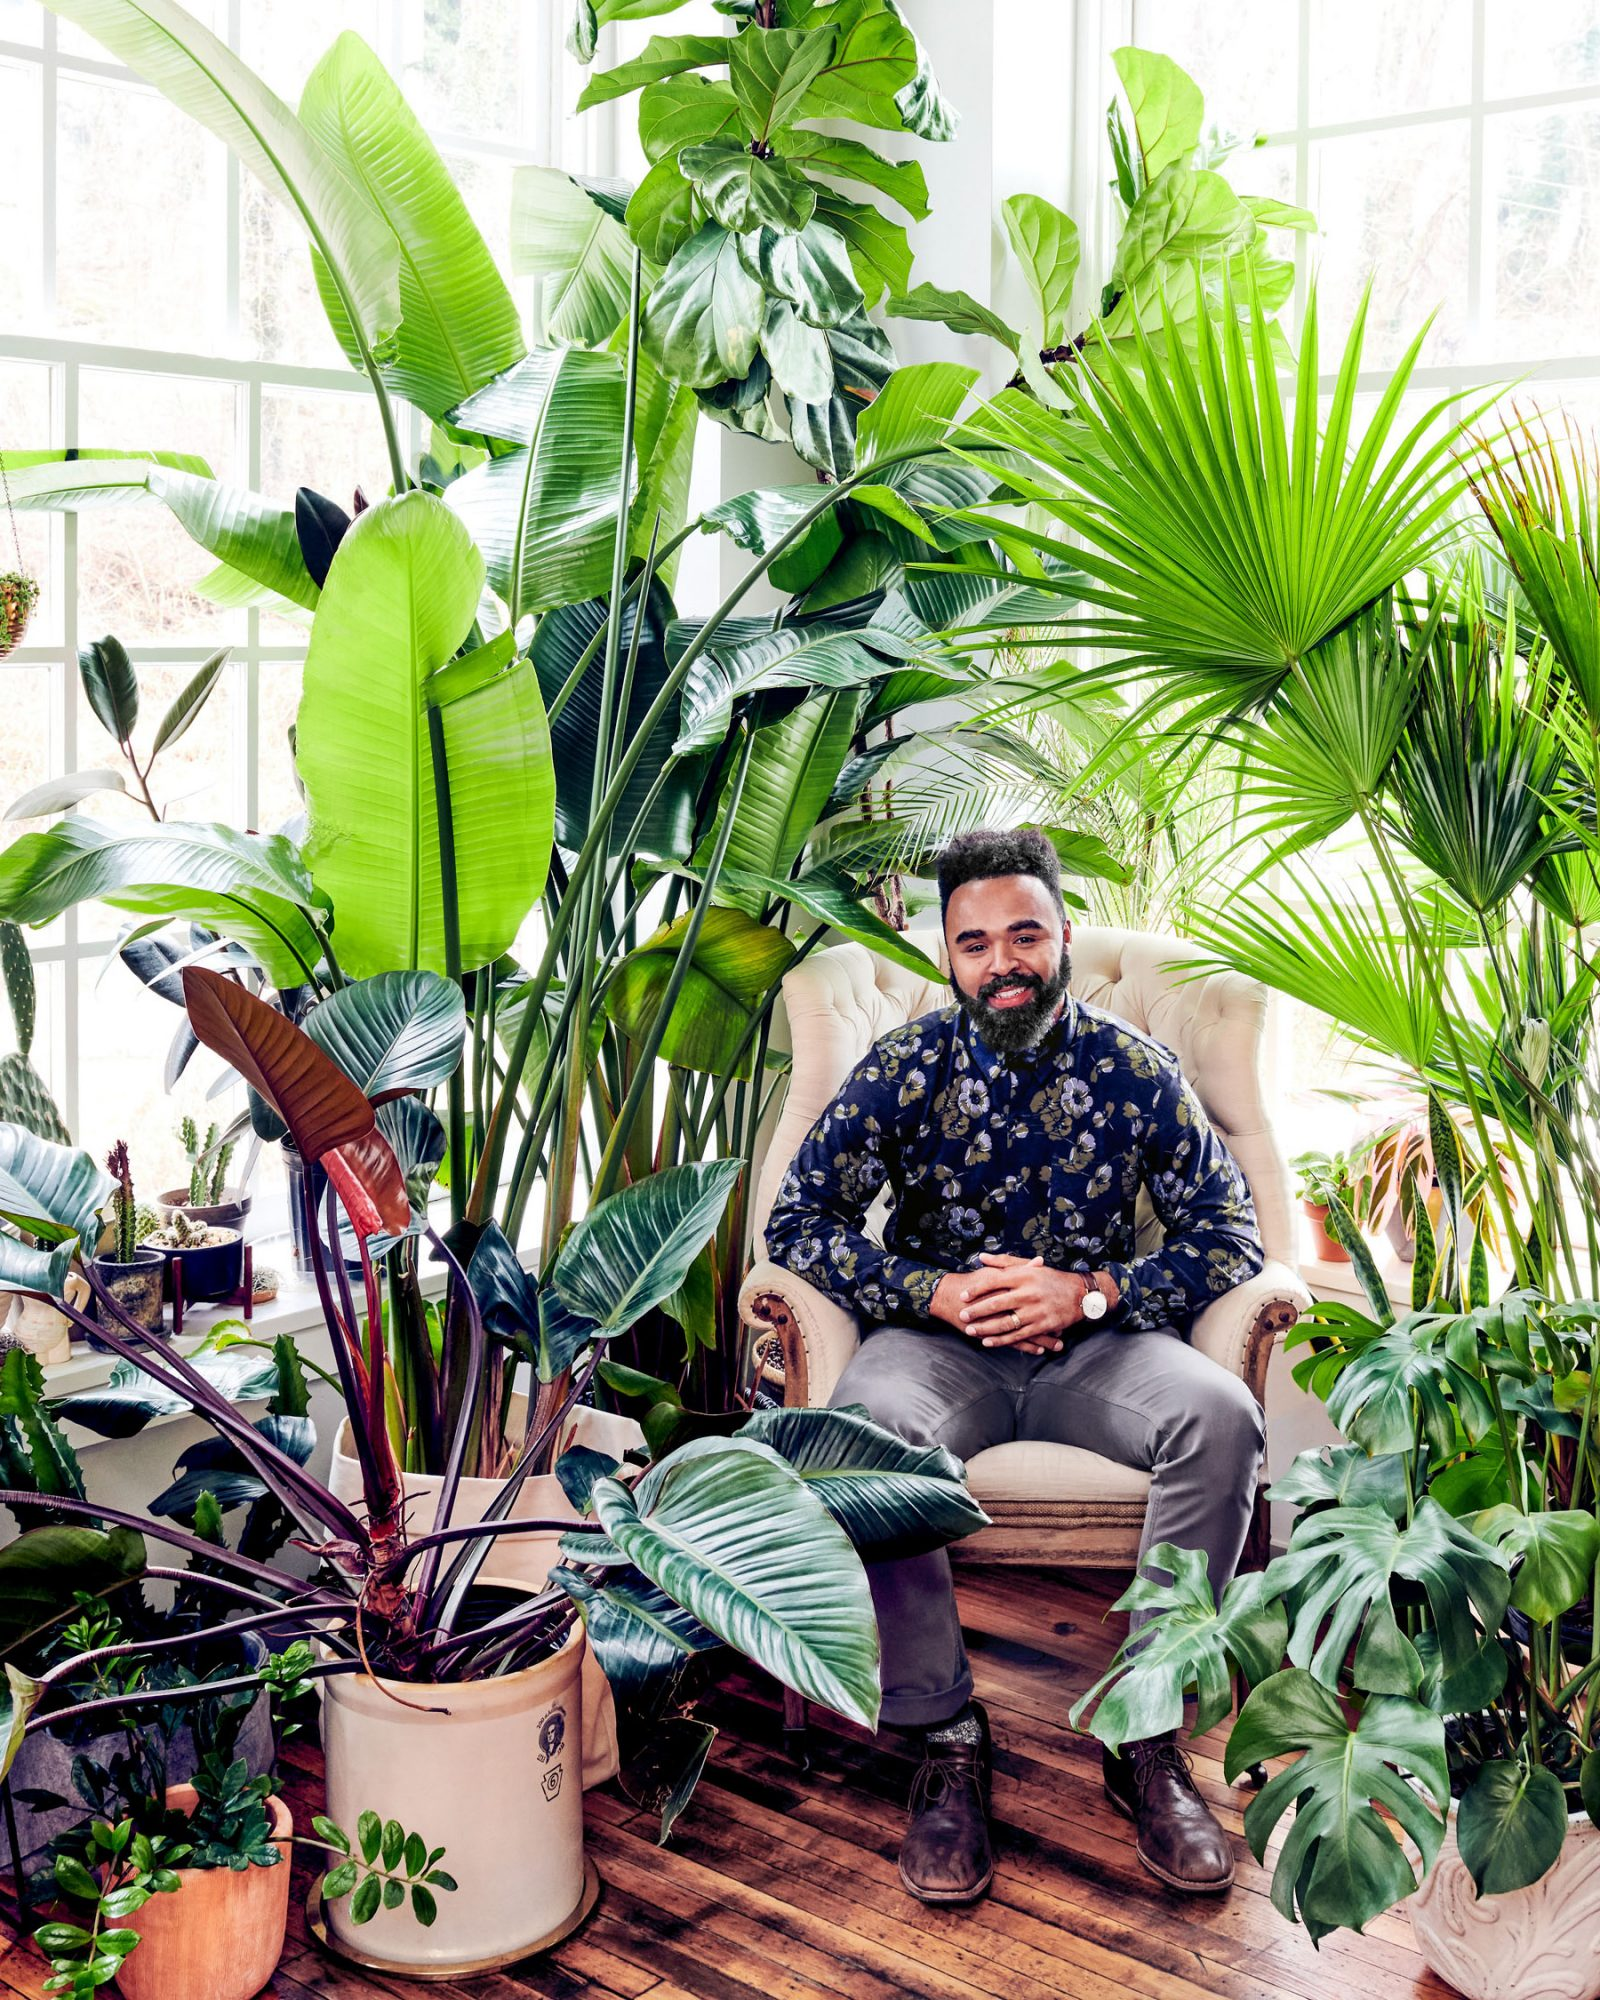 hilton carter surrounded by plants